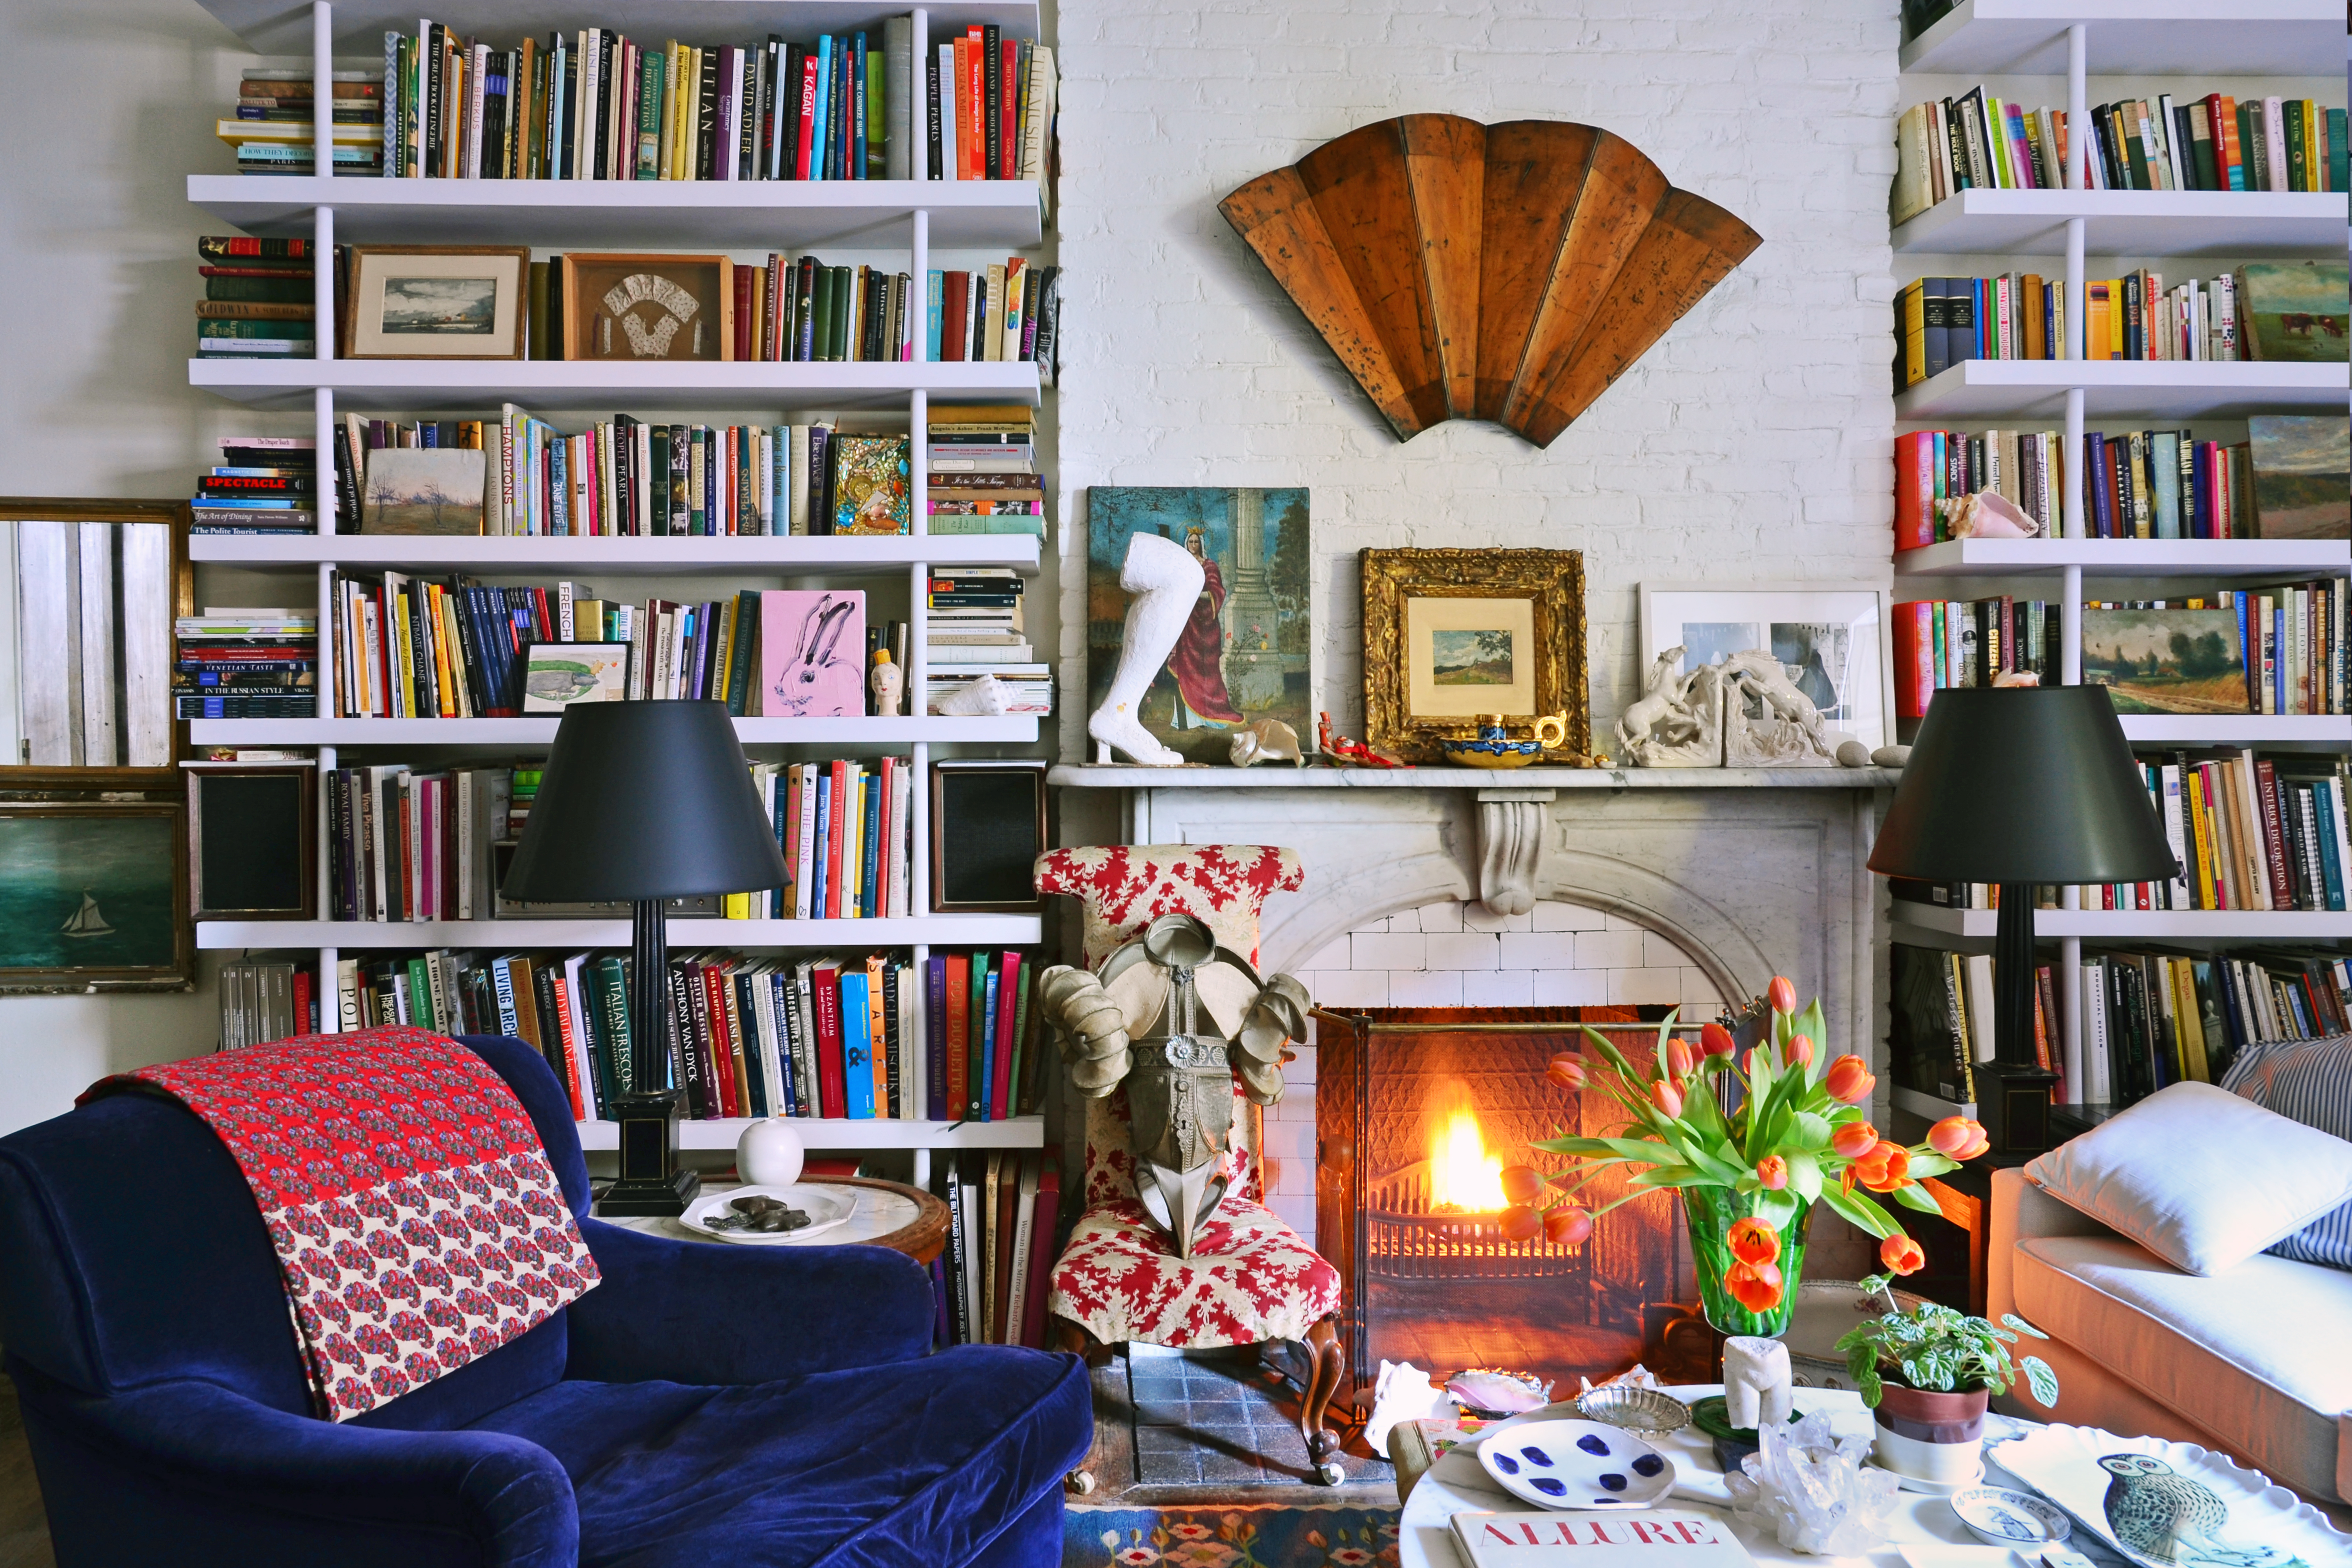 Interior Design Book Expert Recommendations | Apartment Therapy